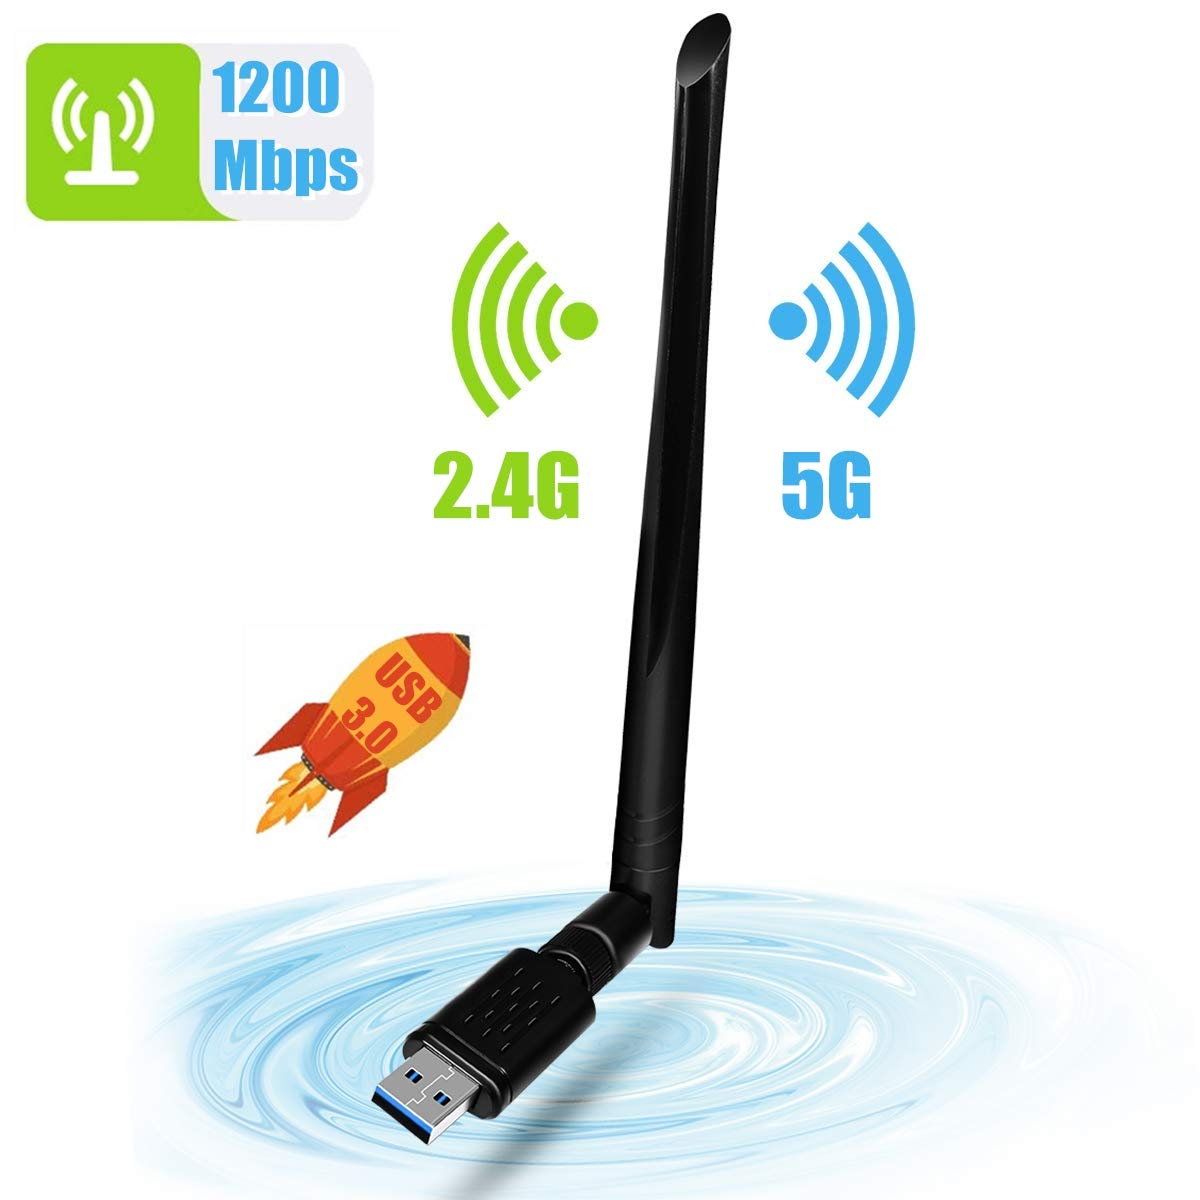 NINECY 1200Mbit/s Dualband (5G/867Mbps+2.4G/300Mbps) WiFi Adapter USB 3.0 WiFi Dongle Wireless WLAN Empfänger mit 5dBi Antenna